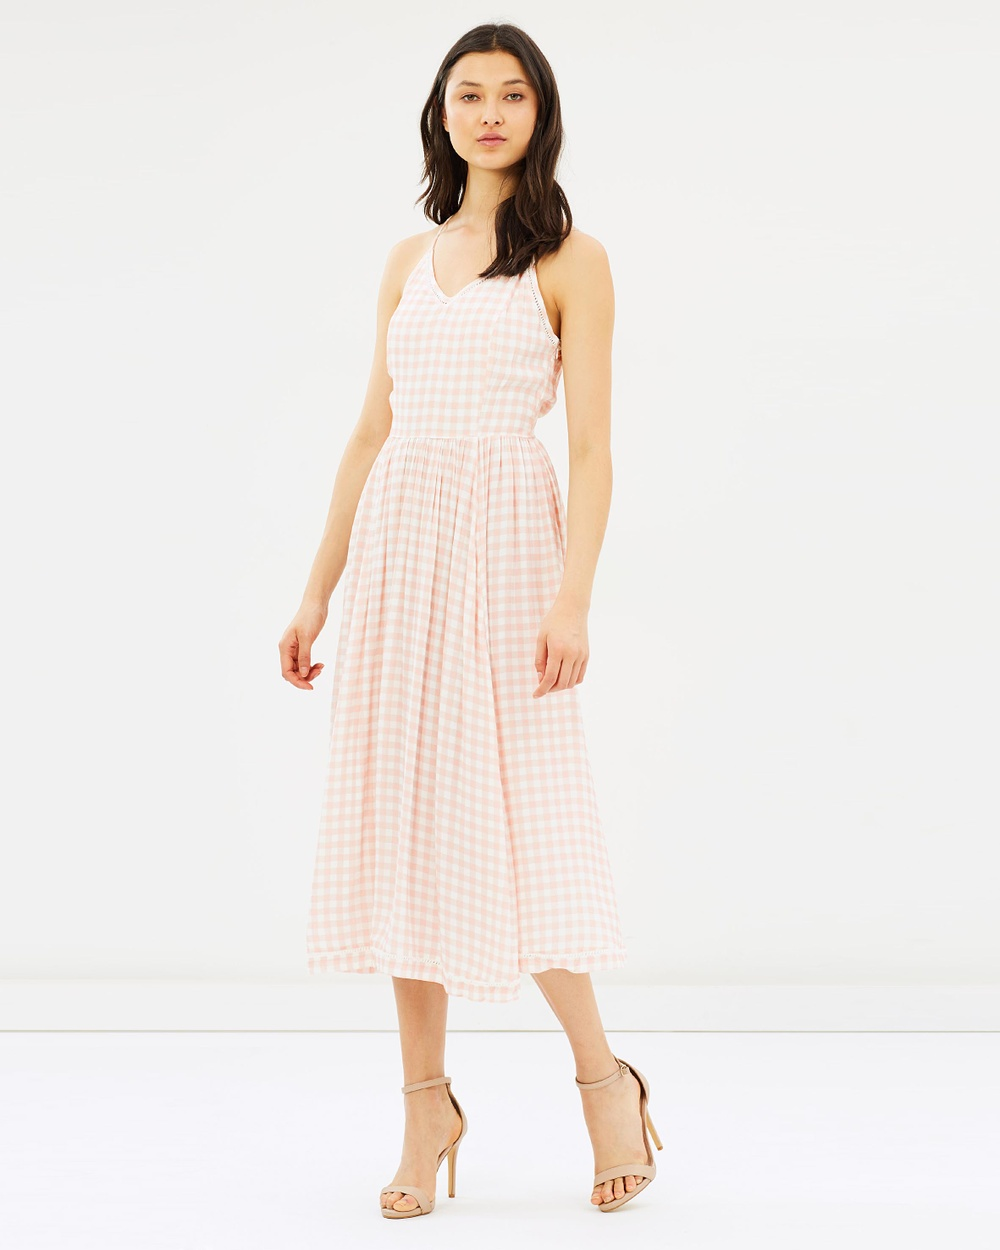 IMONNI A Line Dress Dresses Blush & Ivory Gingham A-Line Dress